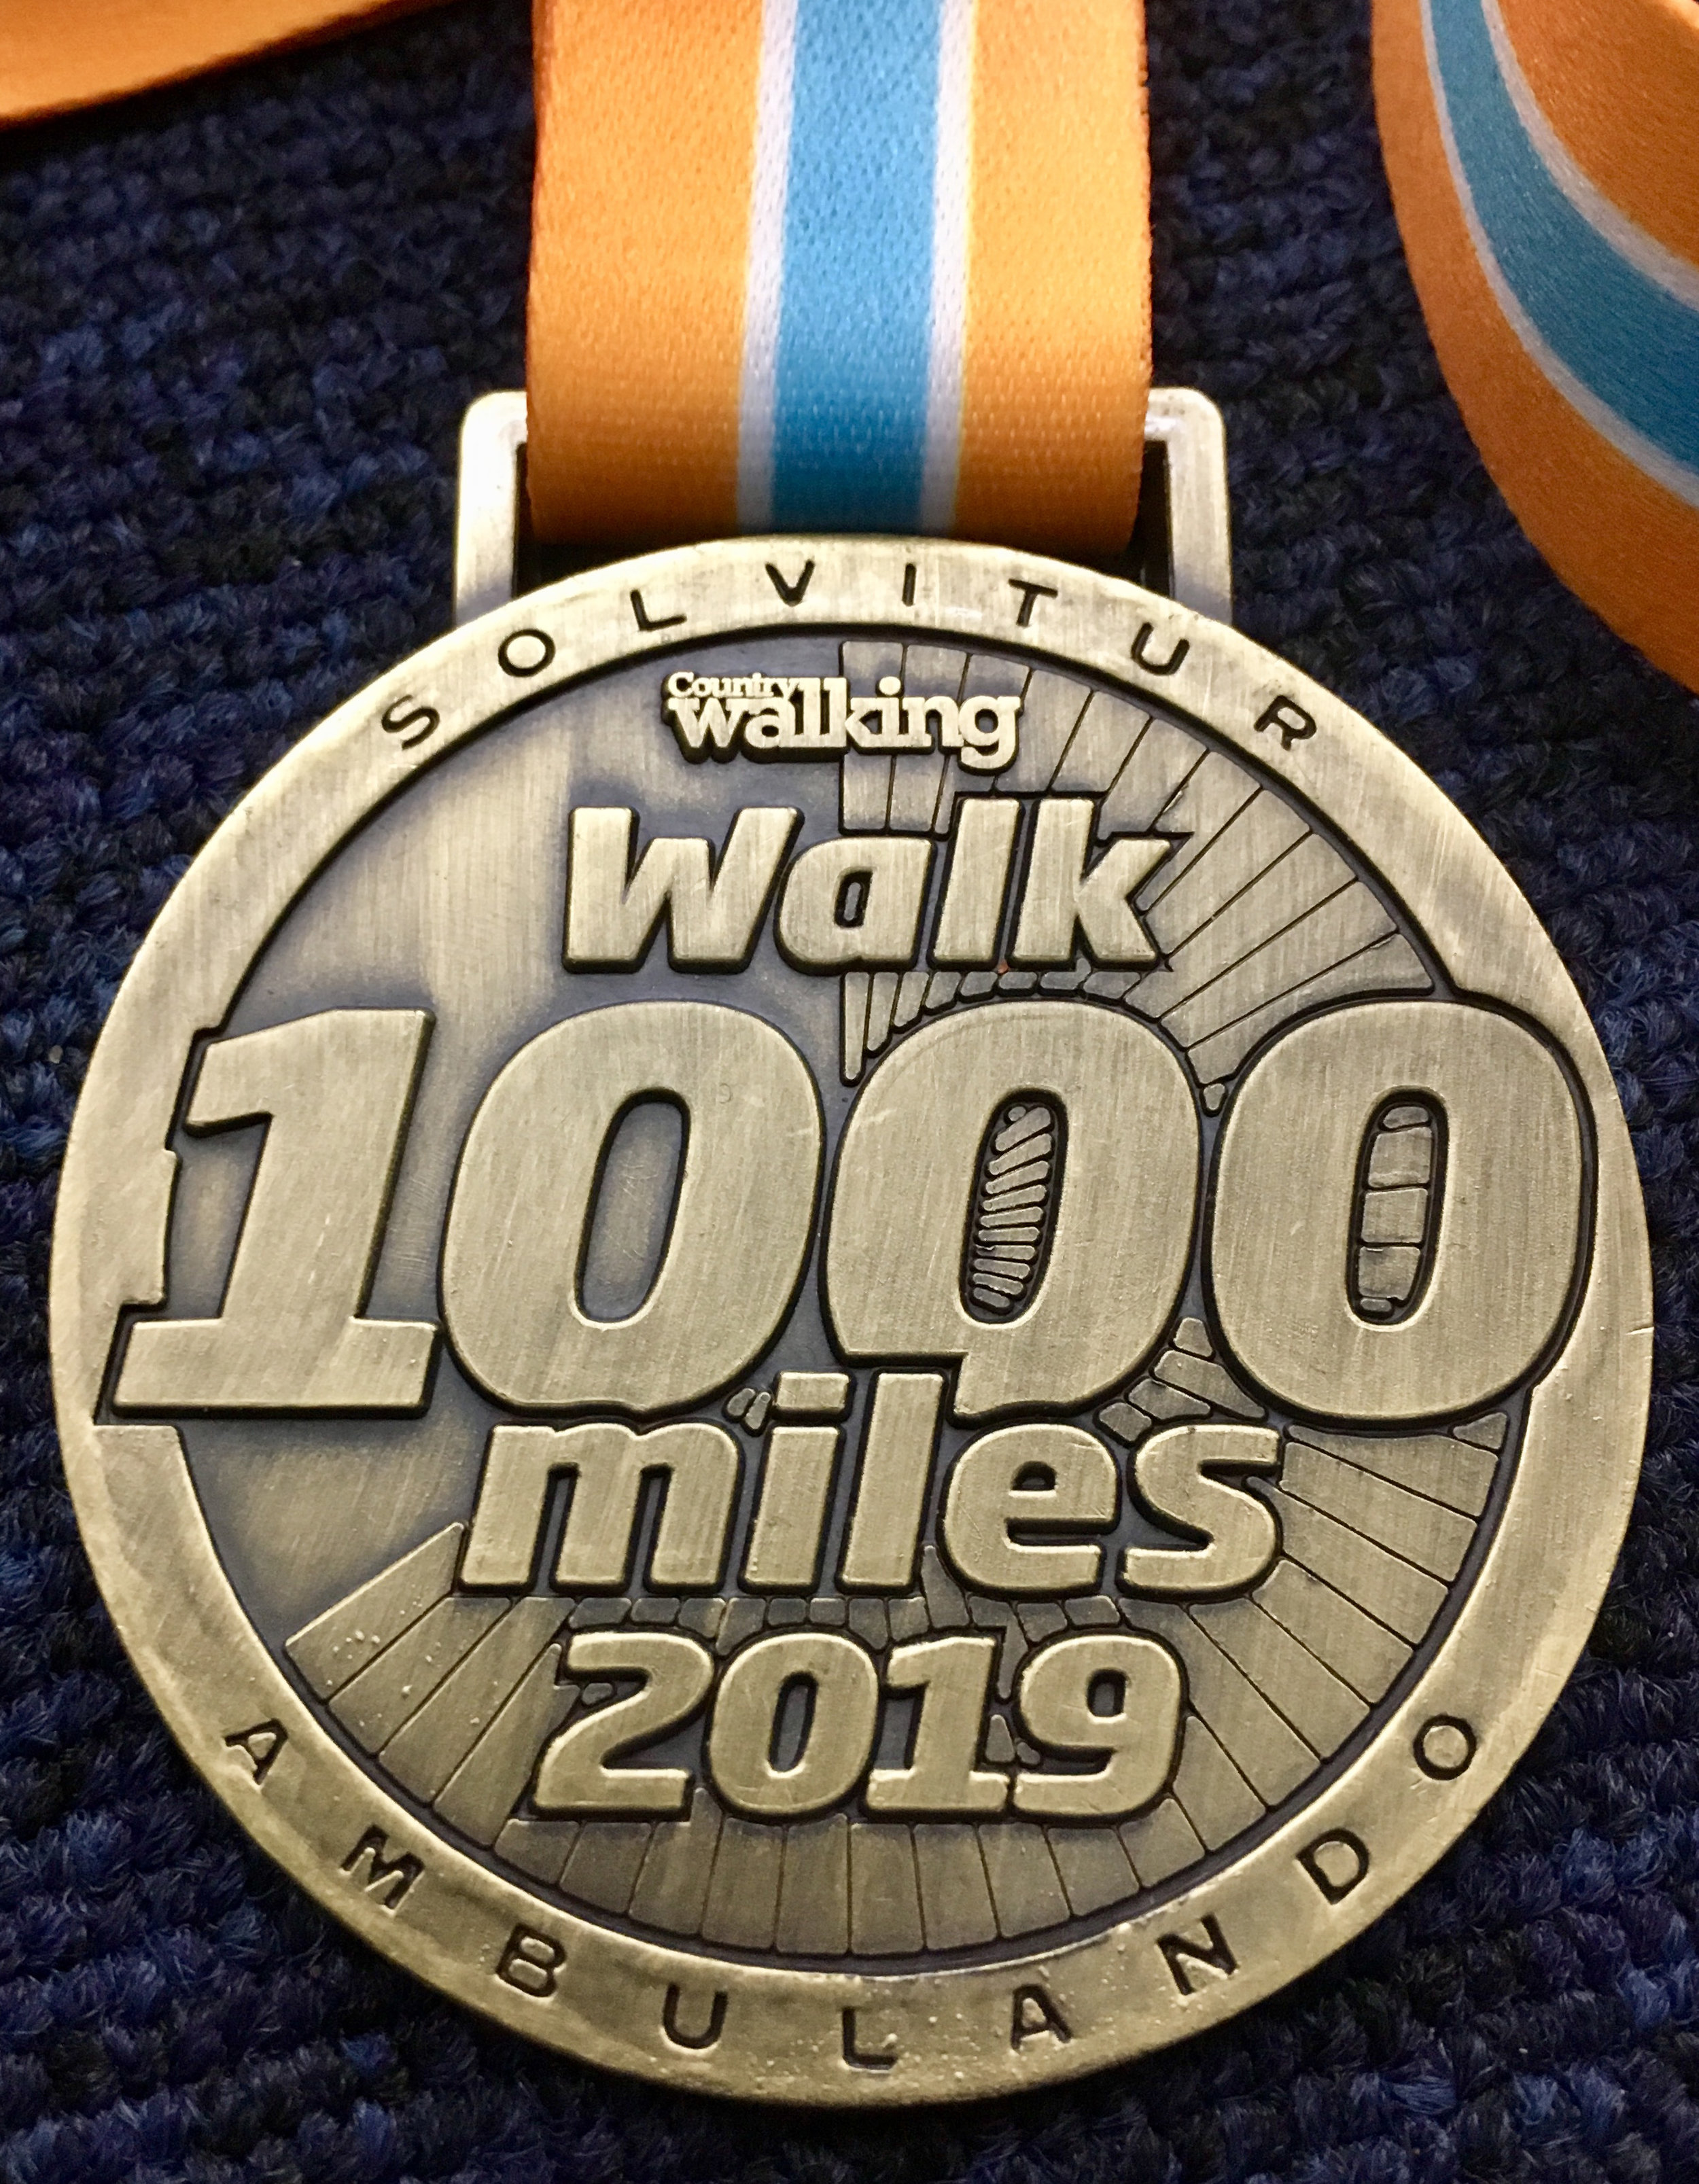 1000-mile completer medals this year will be finished in antique gold.